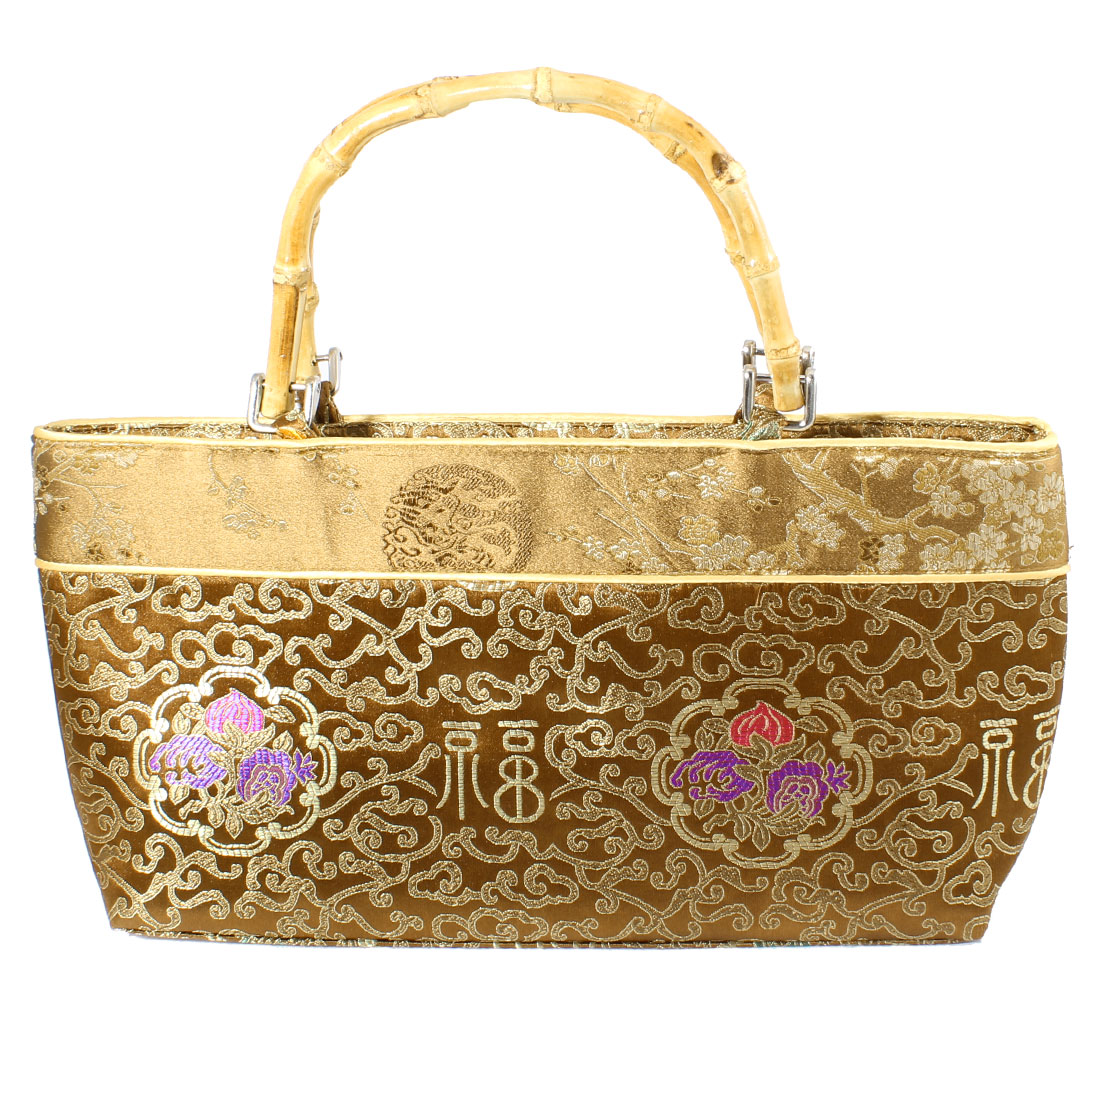 Chinese Embroider Auspicious Clouds Print Pouch Handbag Beige Brown for Ladies